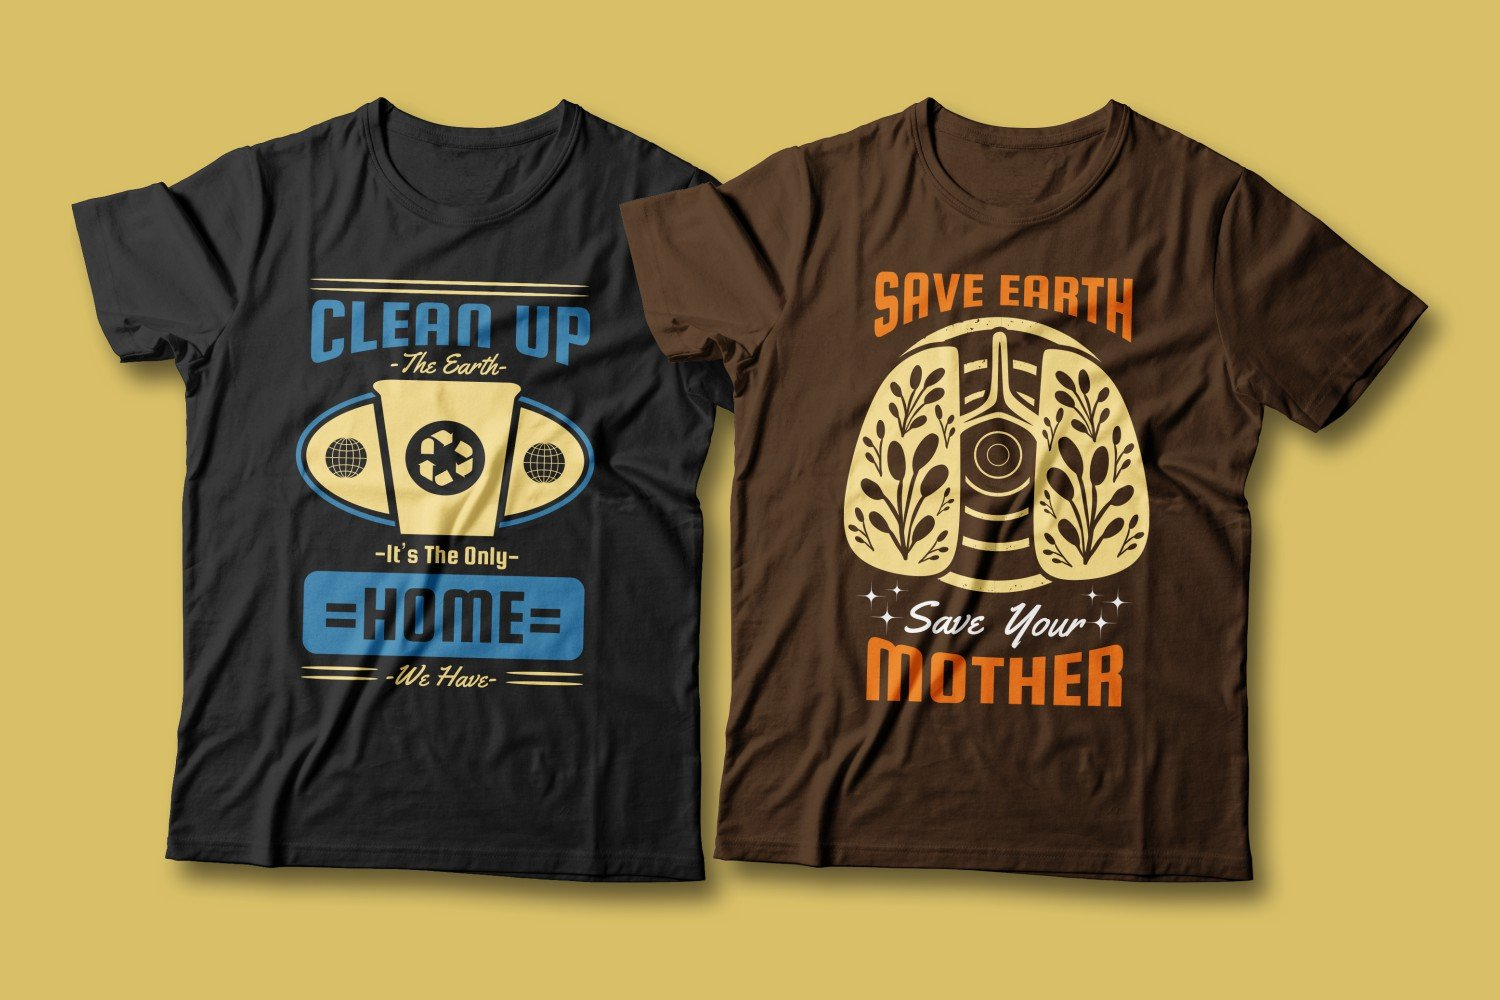 Two T-shirts - blue and brown. Both are about respect for nature.